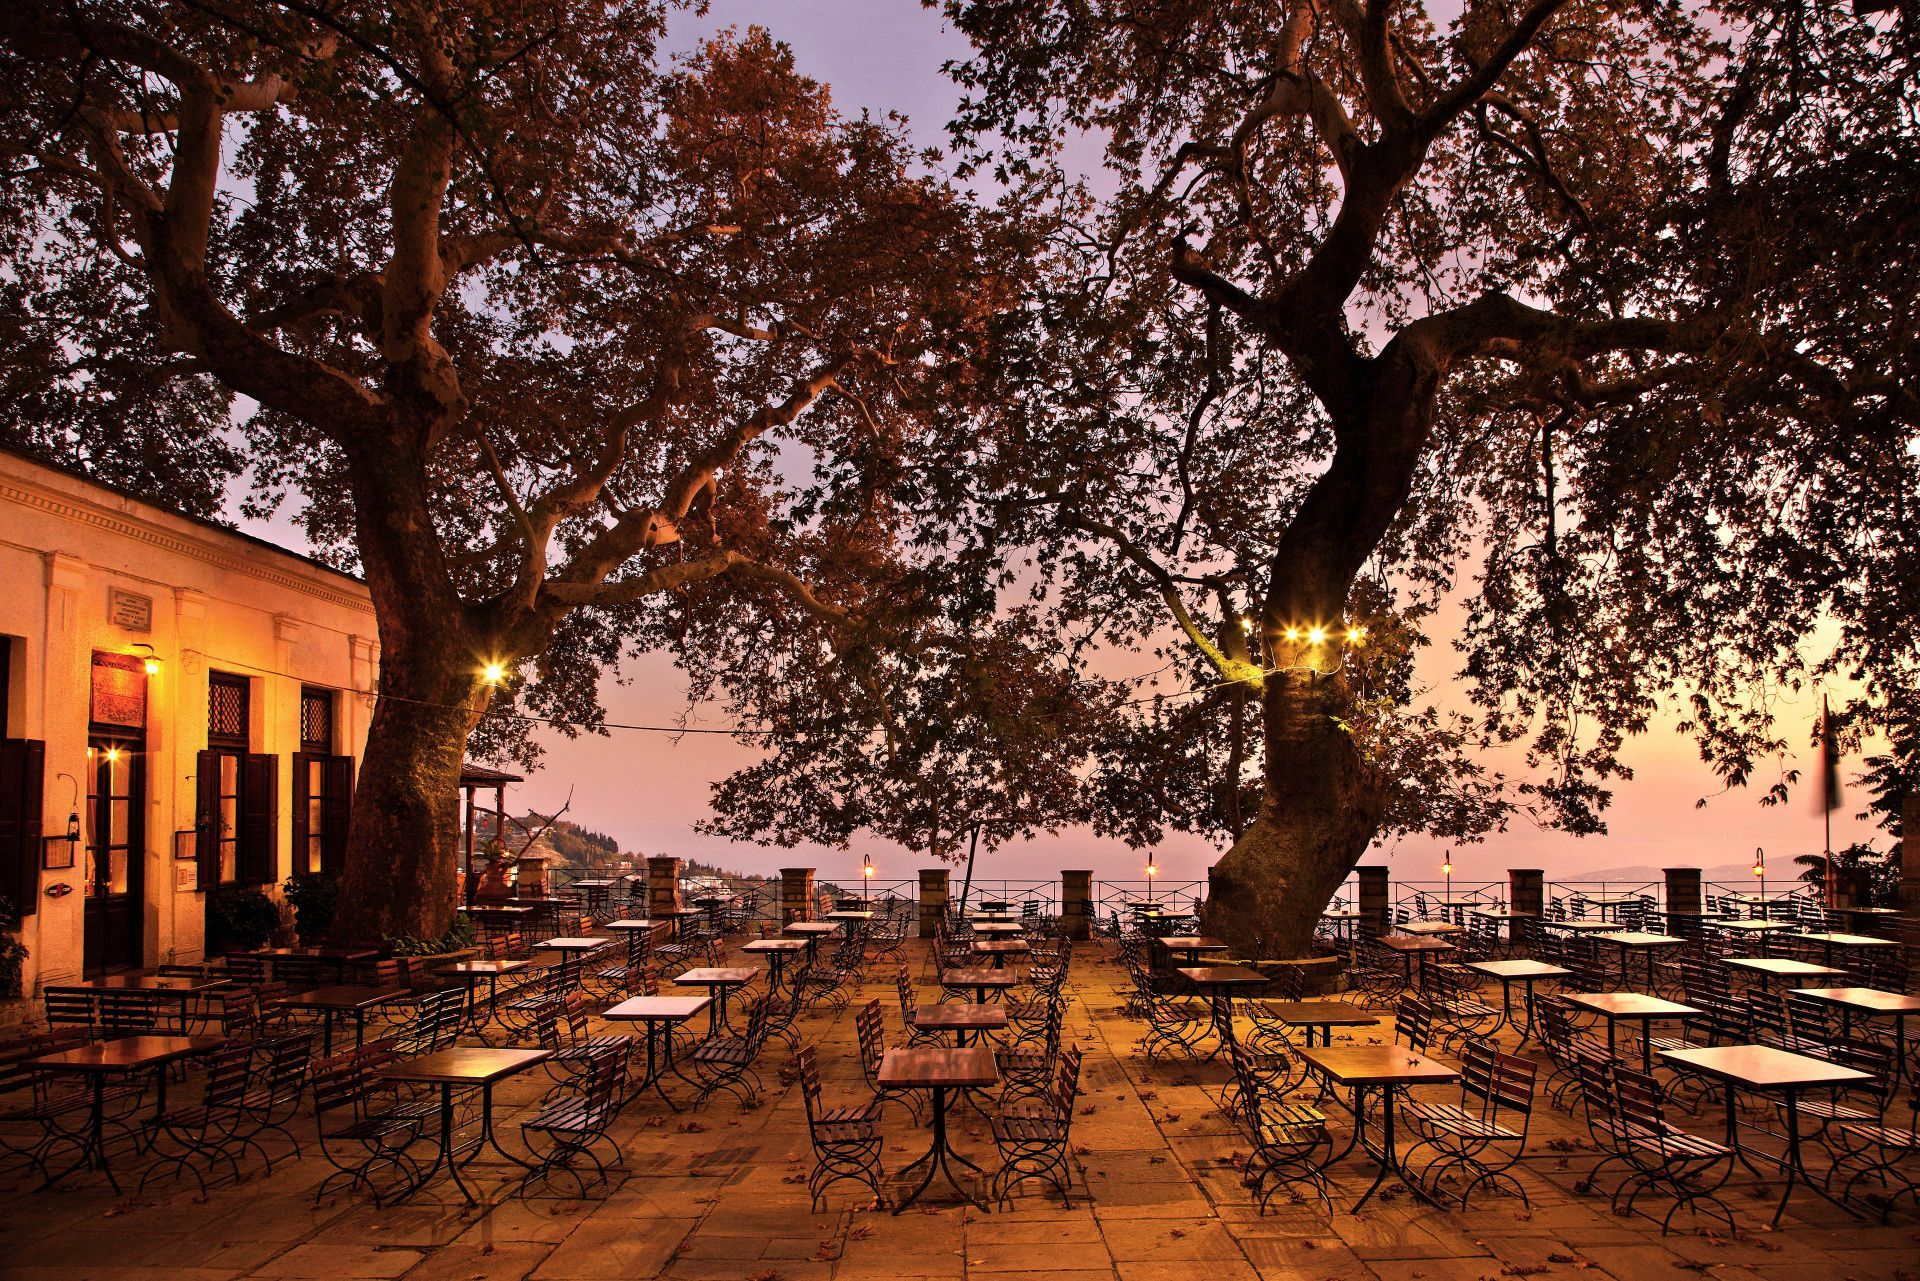 Places to eat and drink in Pelion